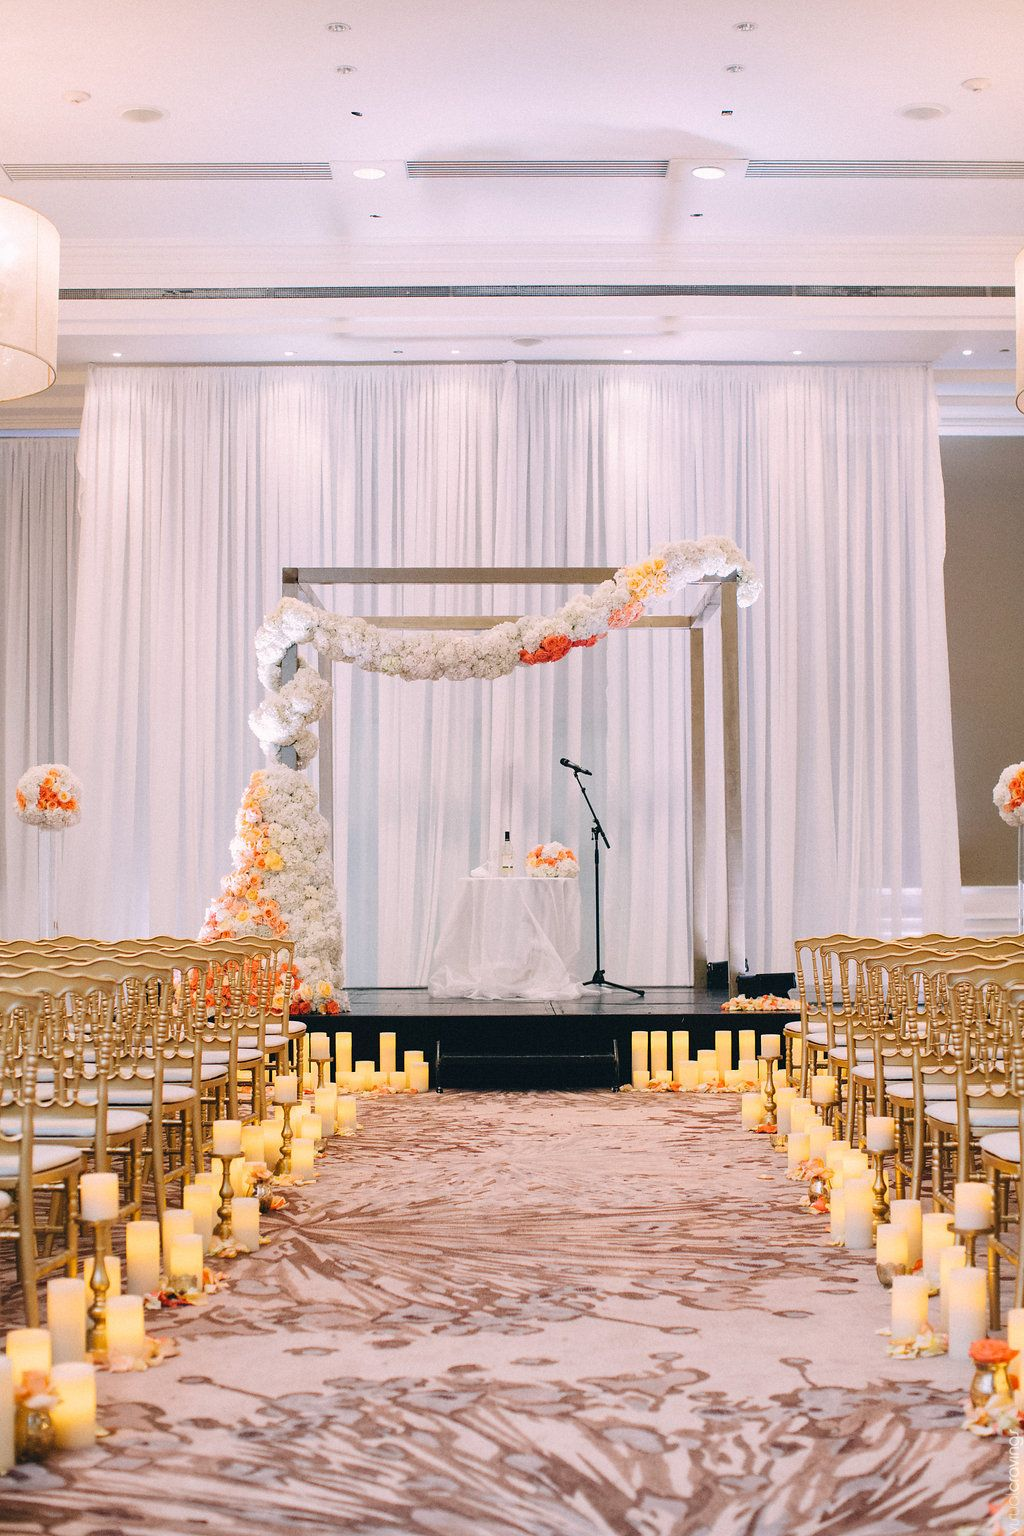 Beautiful Ceremony With White Gold And Peach Aisle Lined Candle Impressions Flameless Led Candles Leading Up To Gorgeous Fl Garland